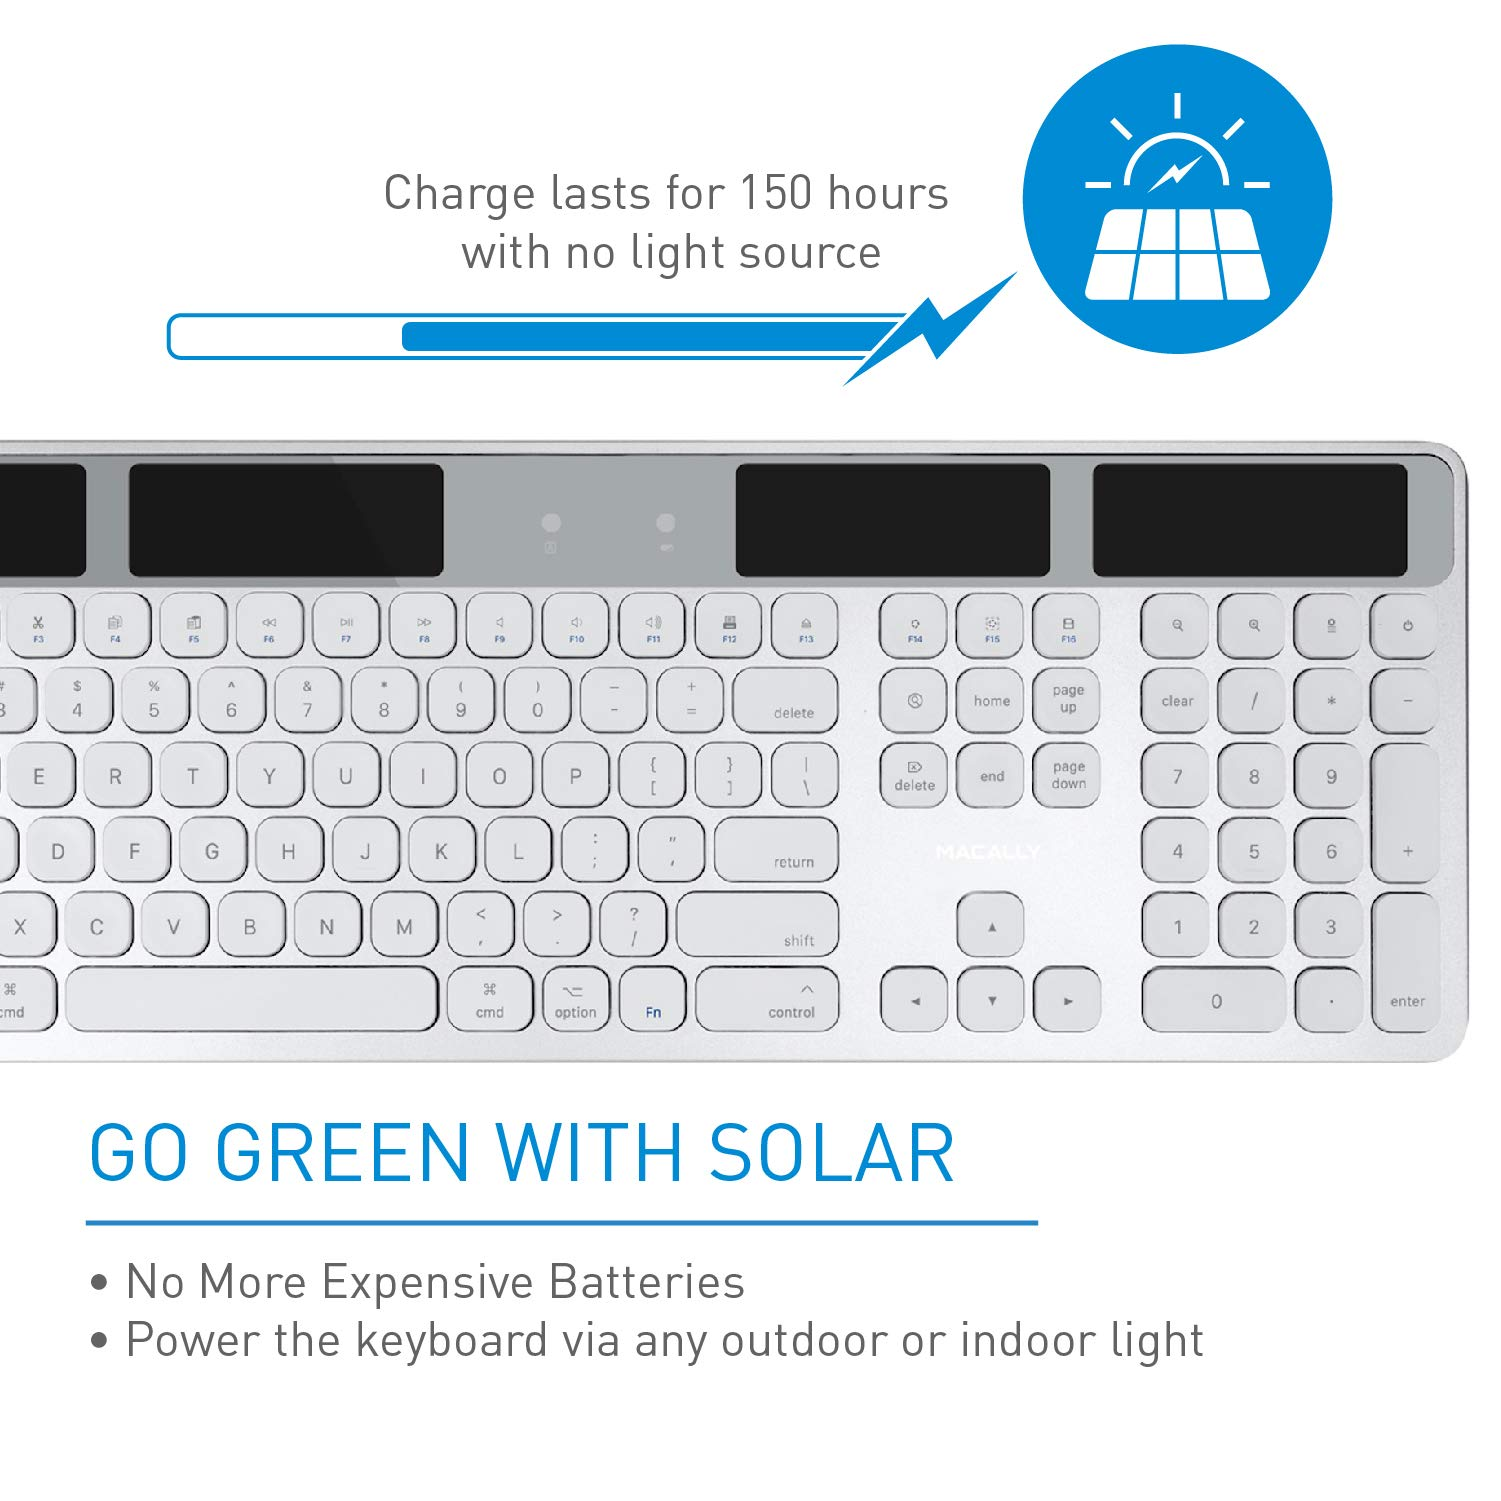 Macally Wireless Solar Keyboard for Mac Mini/Pro, iMac Desktop Computers & Apple MacBook Pro/Air Laptops | 2.4 Ghz RF USB Dongle | Caps Lock/Battery Indicators - Silver Aluminum, Gray by Macally (Image #1)